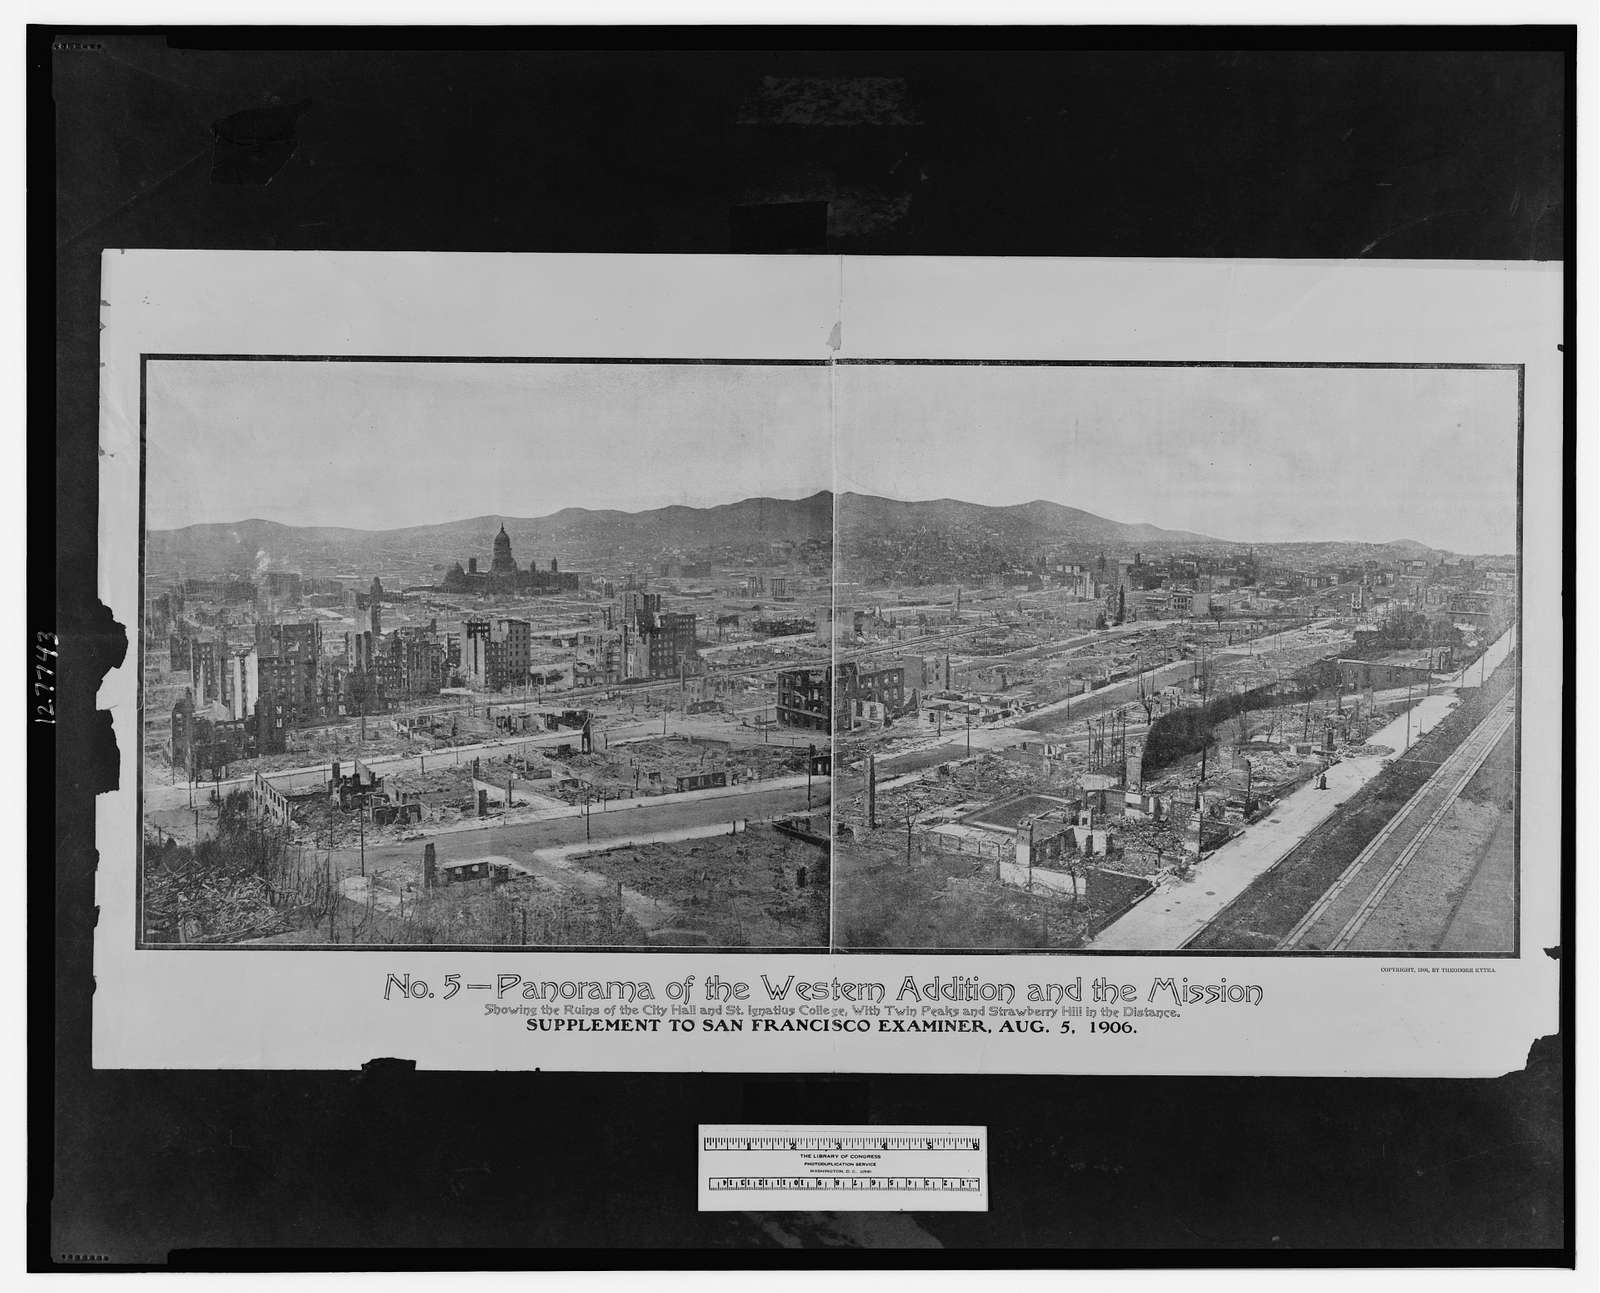 No. 5, Panorama of the western addition and the Mission, showing the ruins of the City Hall and St. Ignatius College, with Twin Peaks and Strawberry Hill in the distance. Supplement to San Francisco Examiner, Aug. 5, 1906.